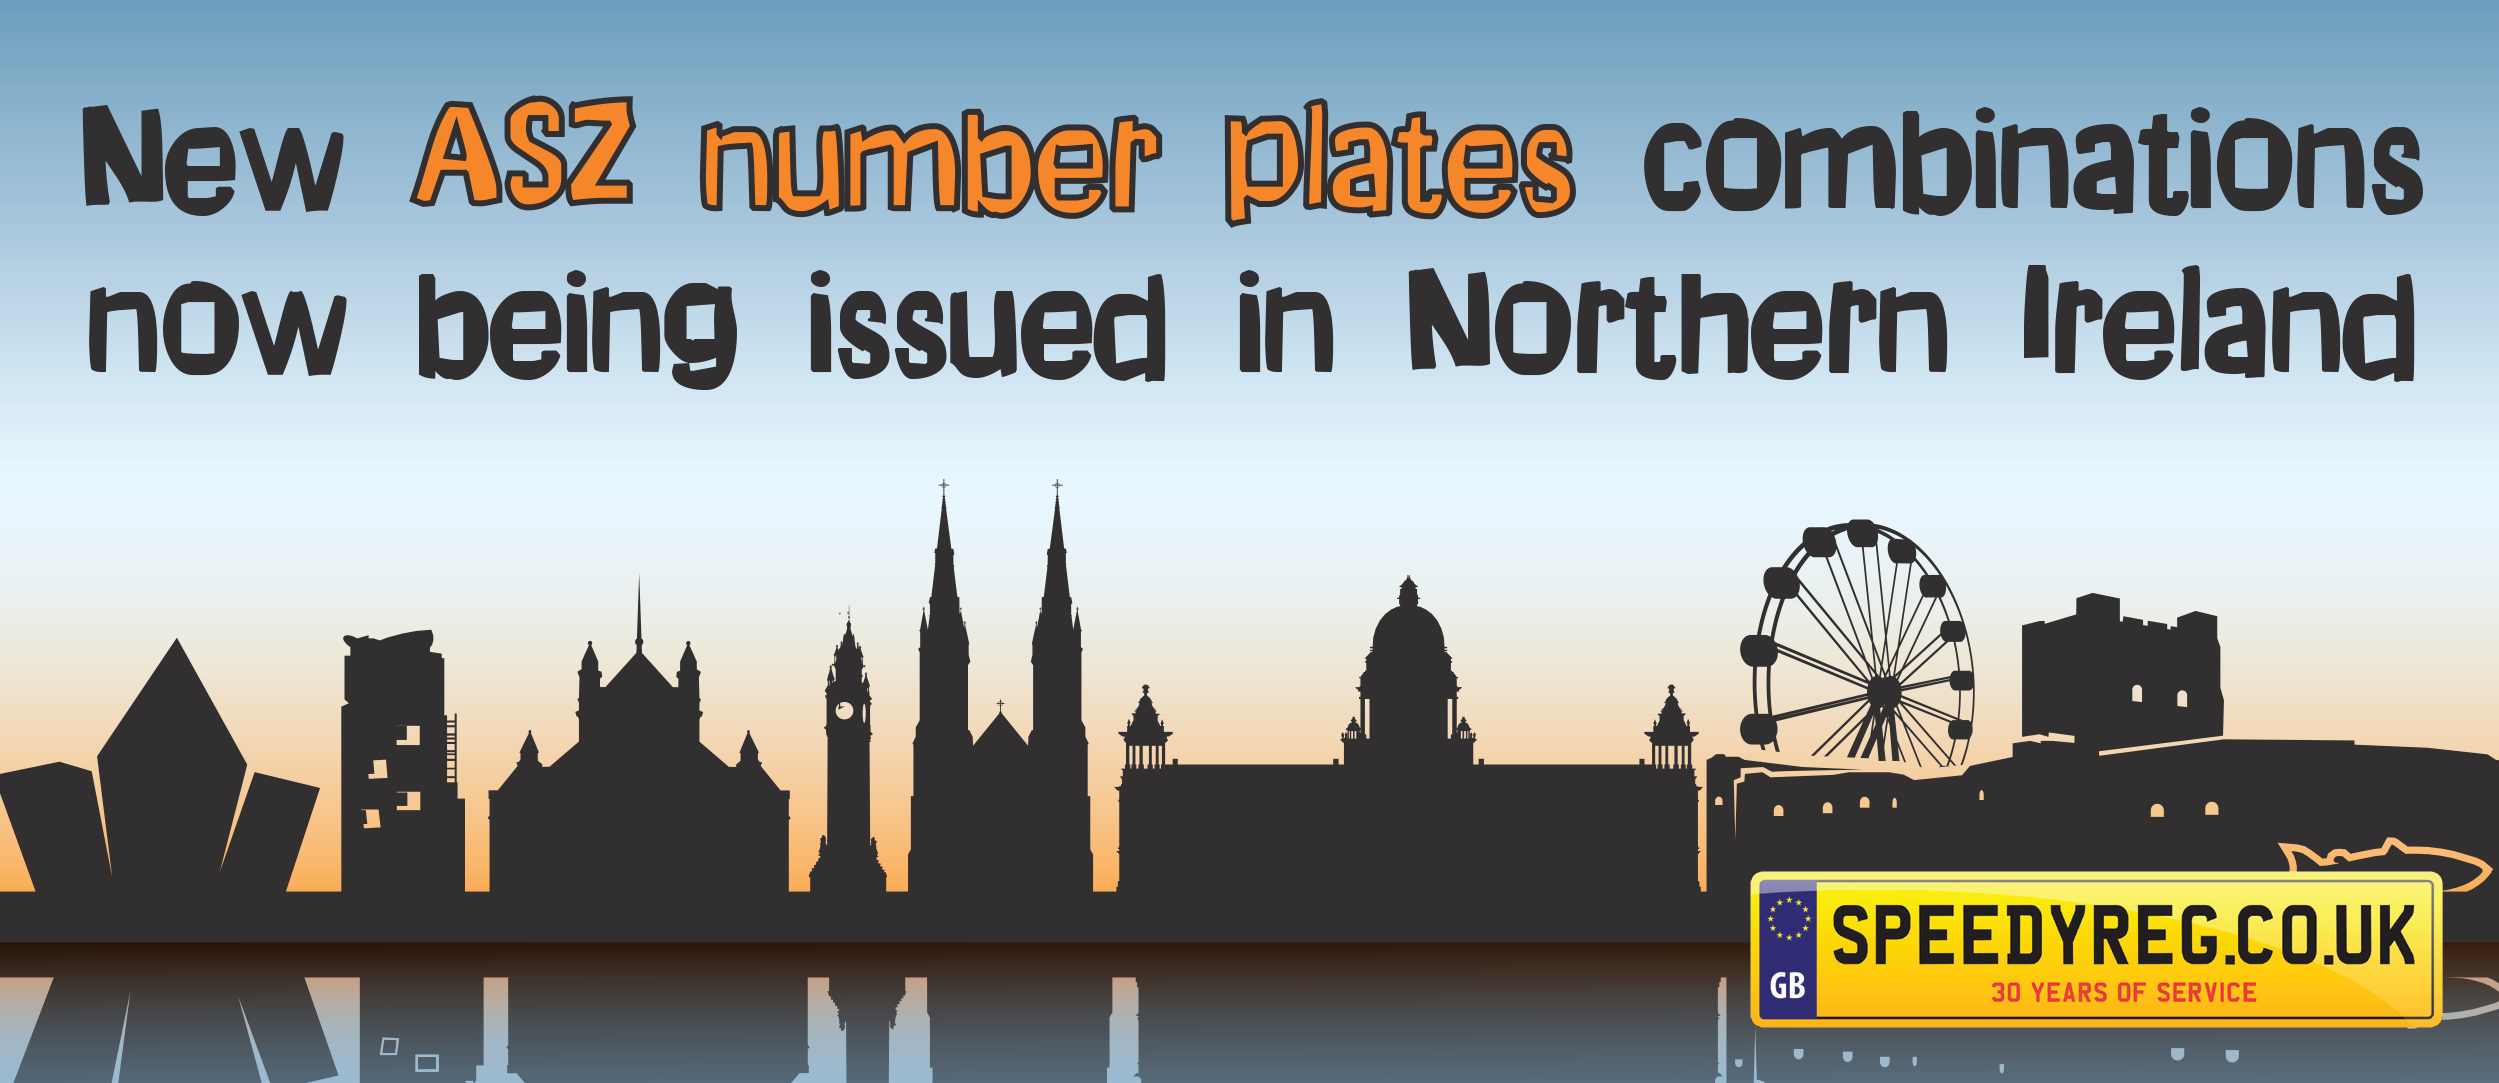 2-new-asz-number-plates-combinations-now-being-issued-in-northern-ireland